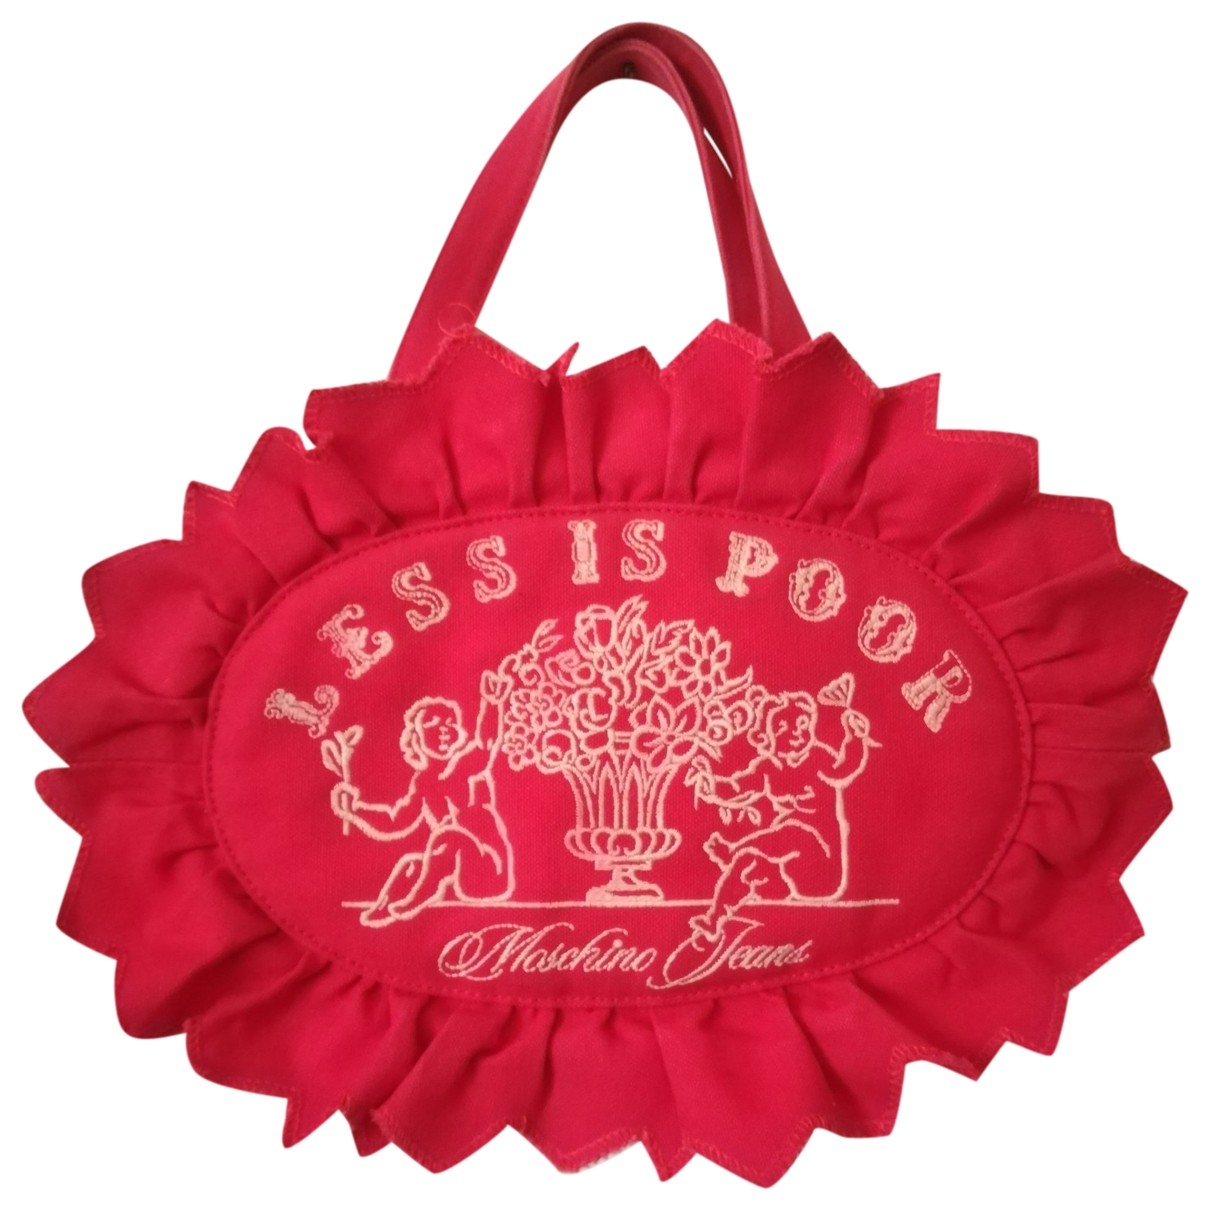 Moschino Cheap And Chic - Sac a main   pour femme en coton - rouge